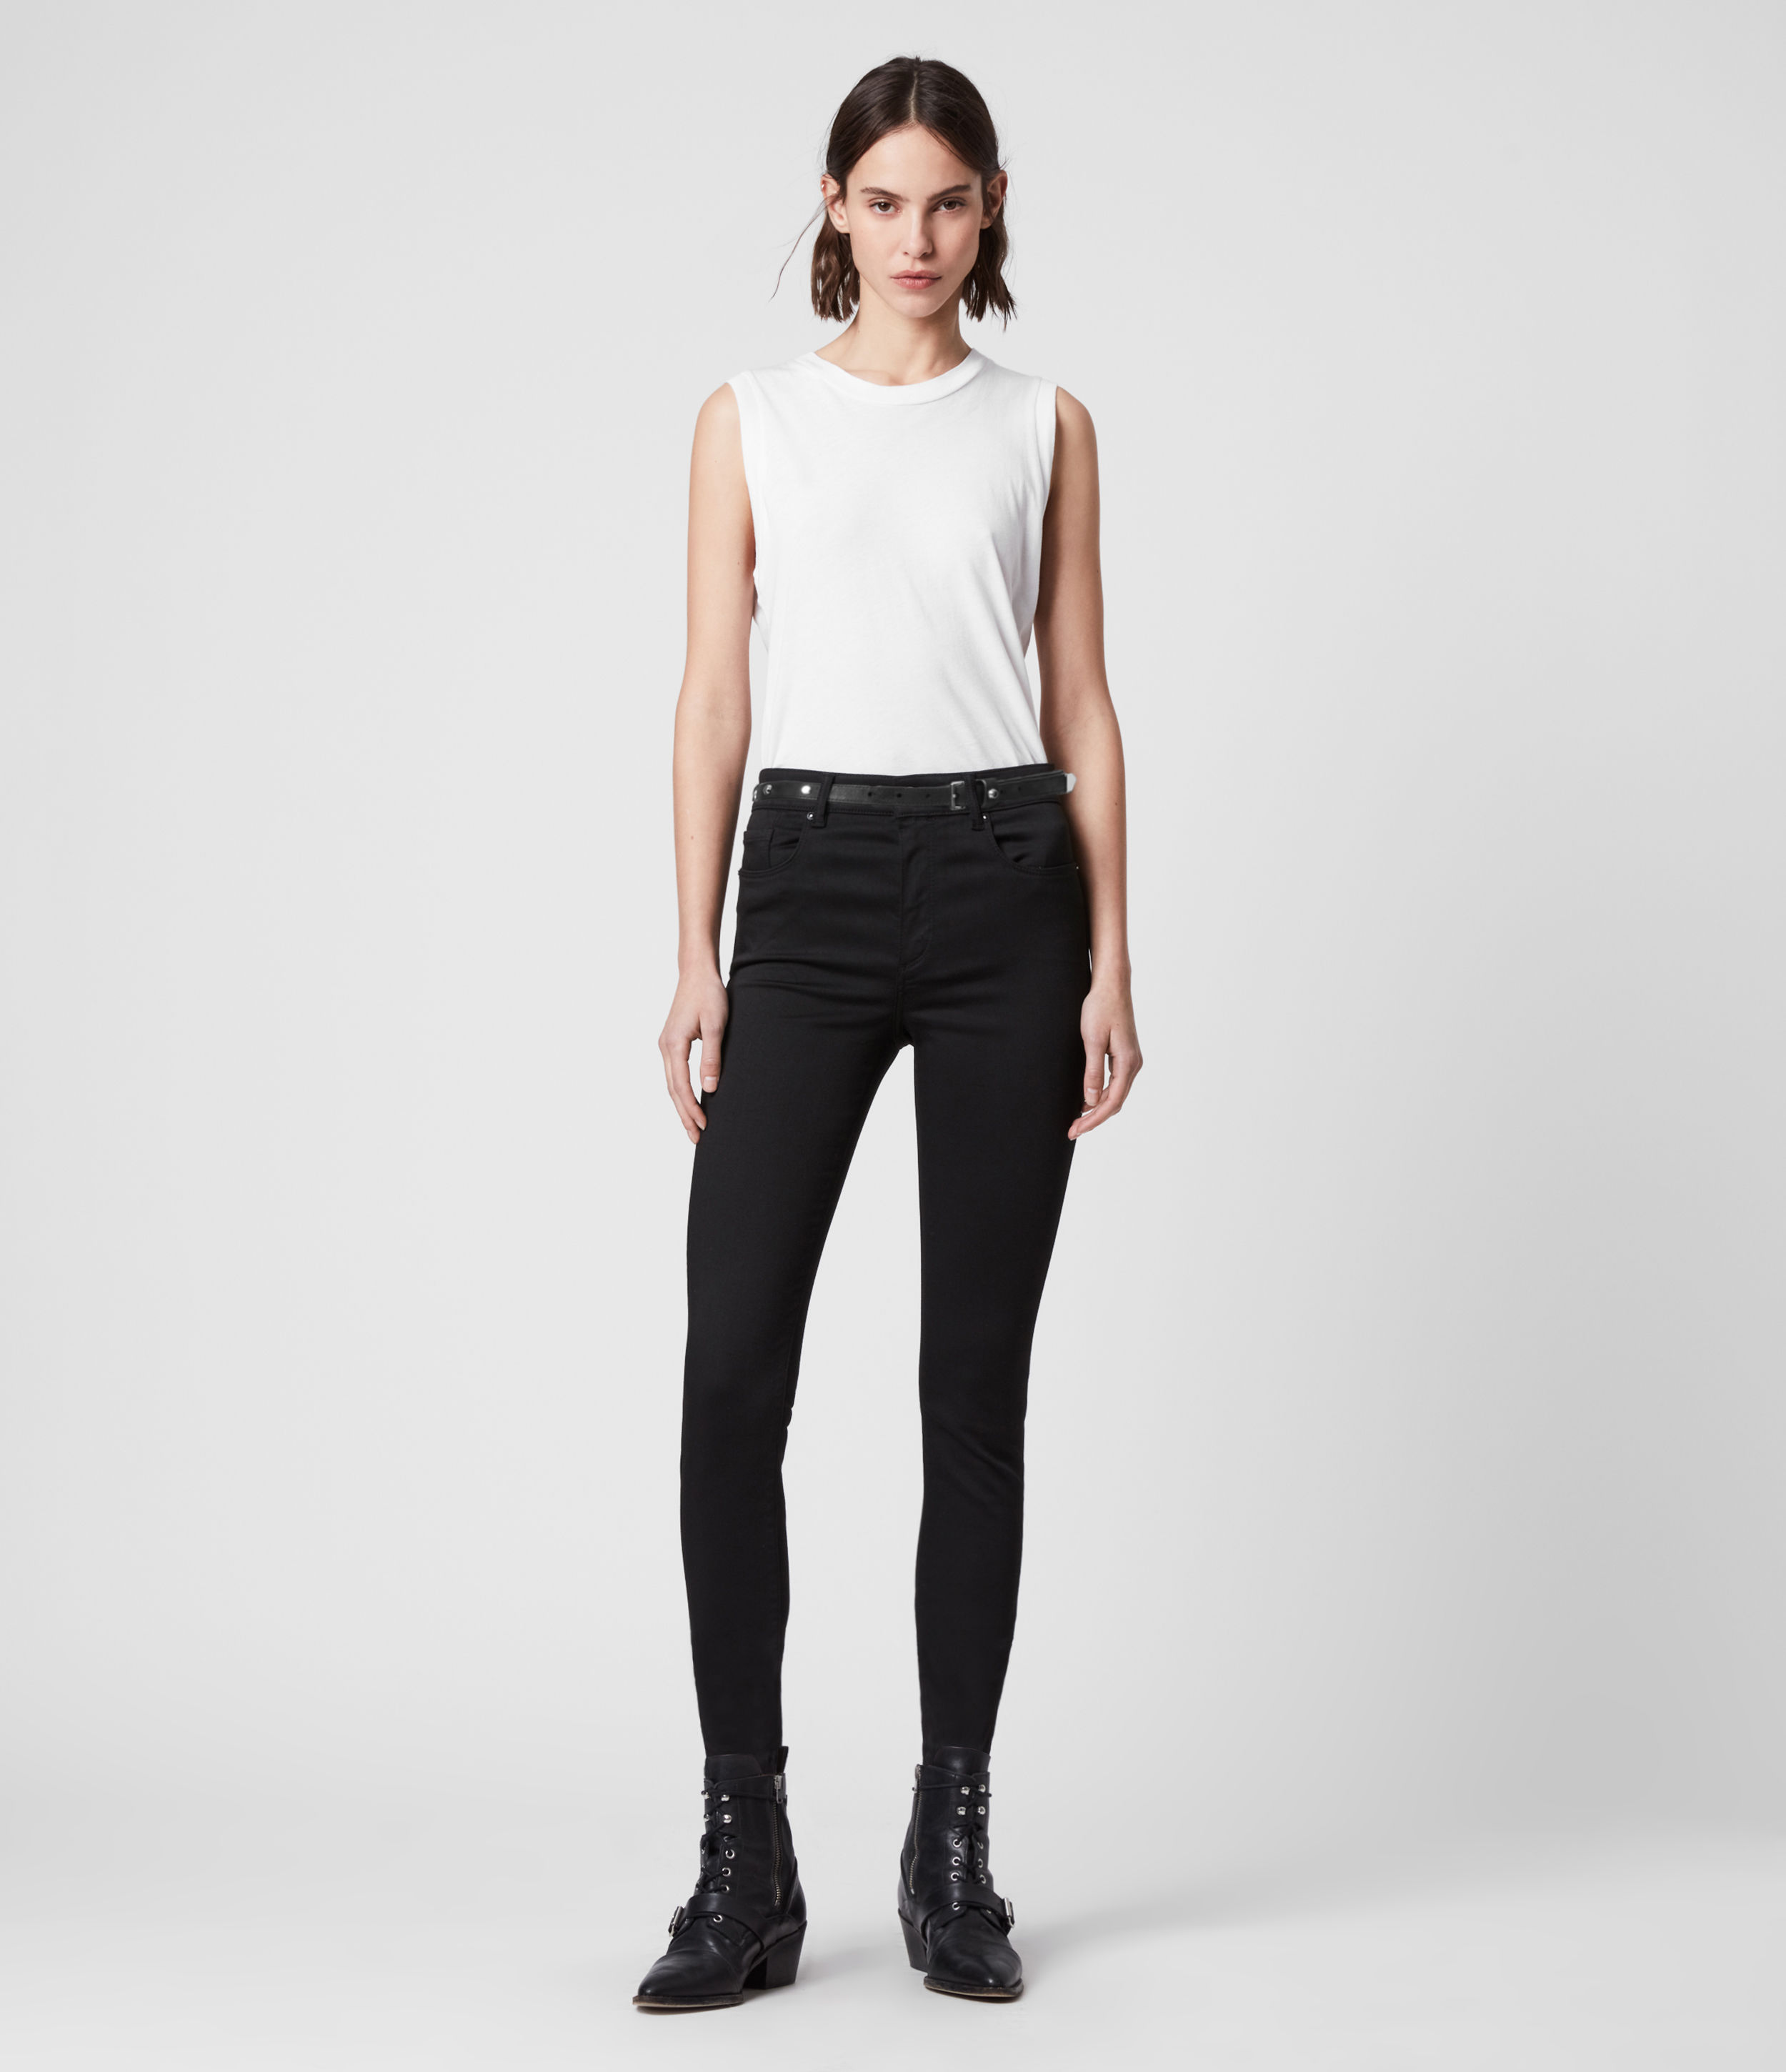 AllSaints Womens Miller Mid-Rise Superstretch Skinny Jeans, Stay Black, Size: 26